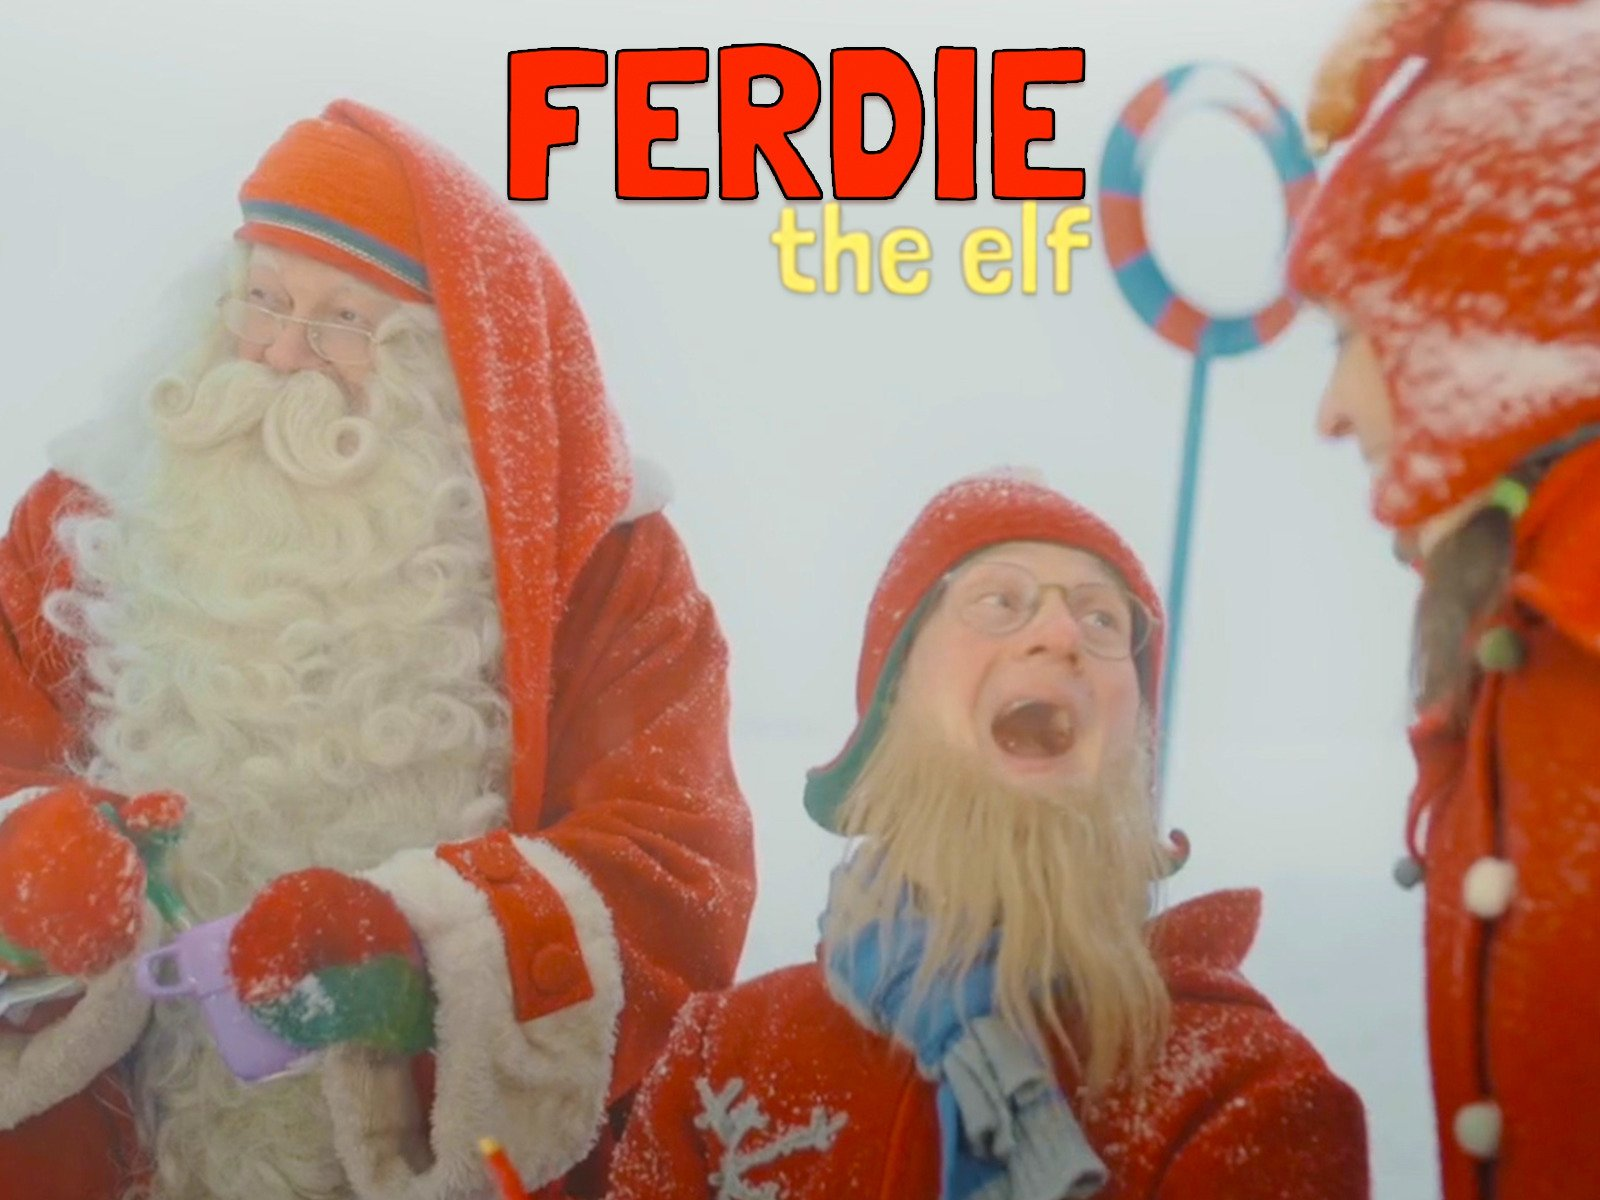 Ferdie the Elf - Season 1